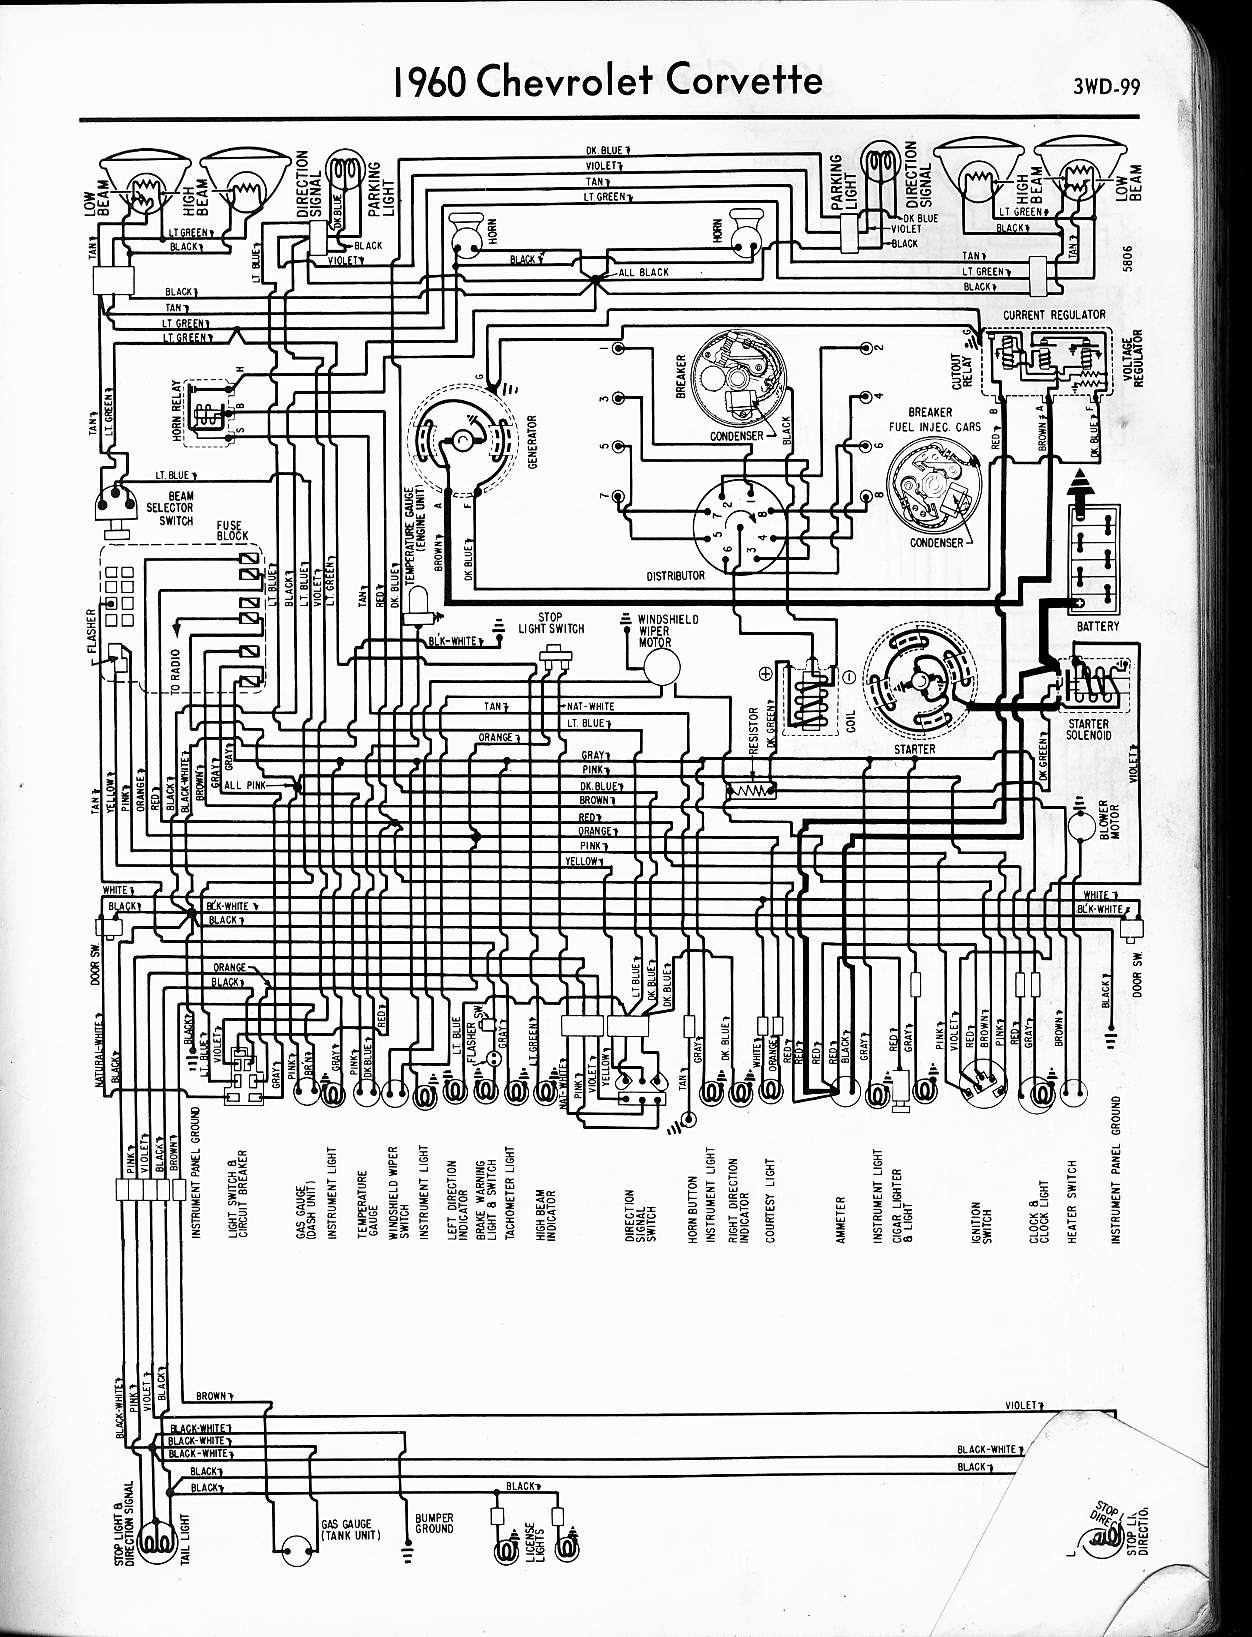 MWireChev60_3WD 099 57 65 chevy wiring diagrams 1960 corvette wiring diagram at aneh.co